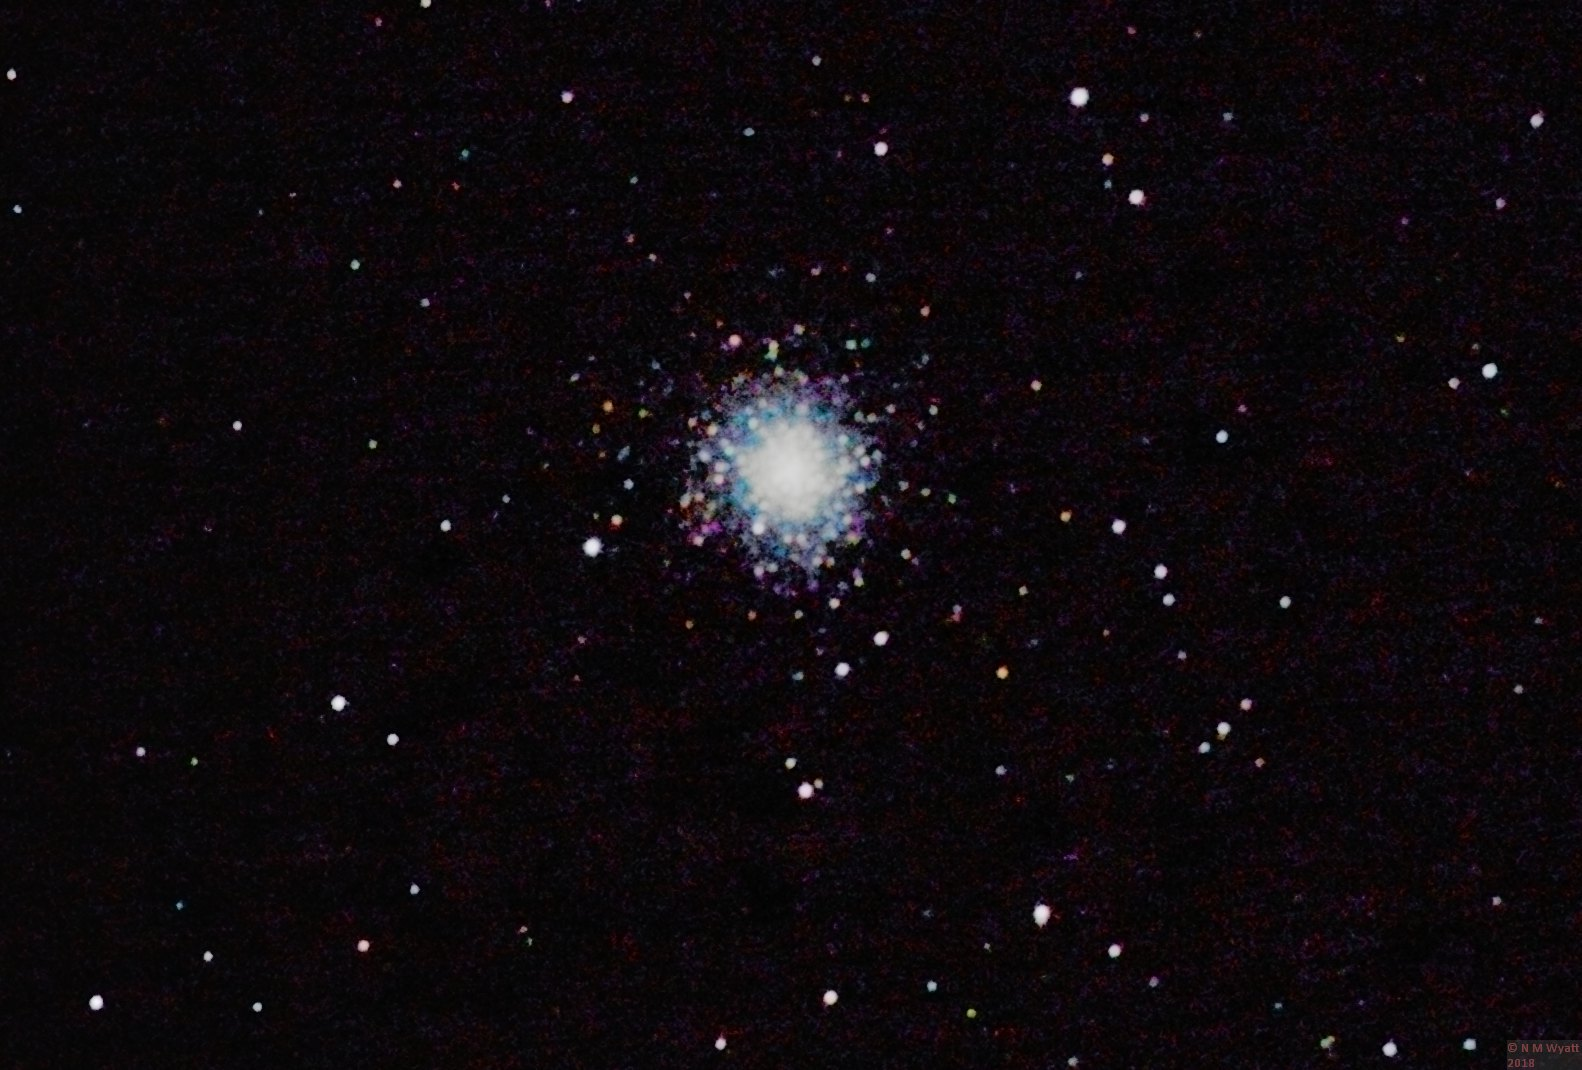 Messier 2, a globular cluster in Aquarius